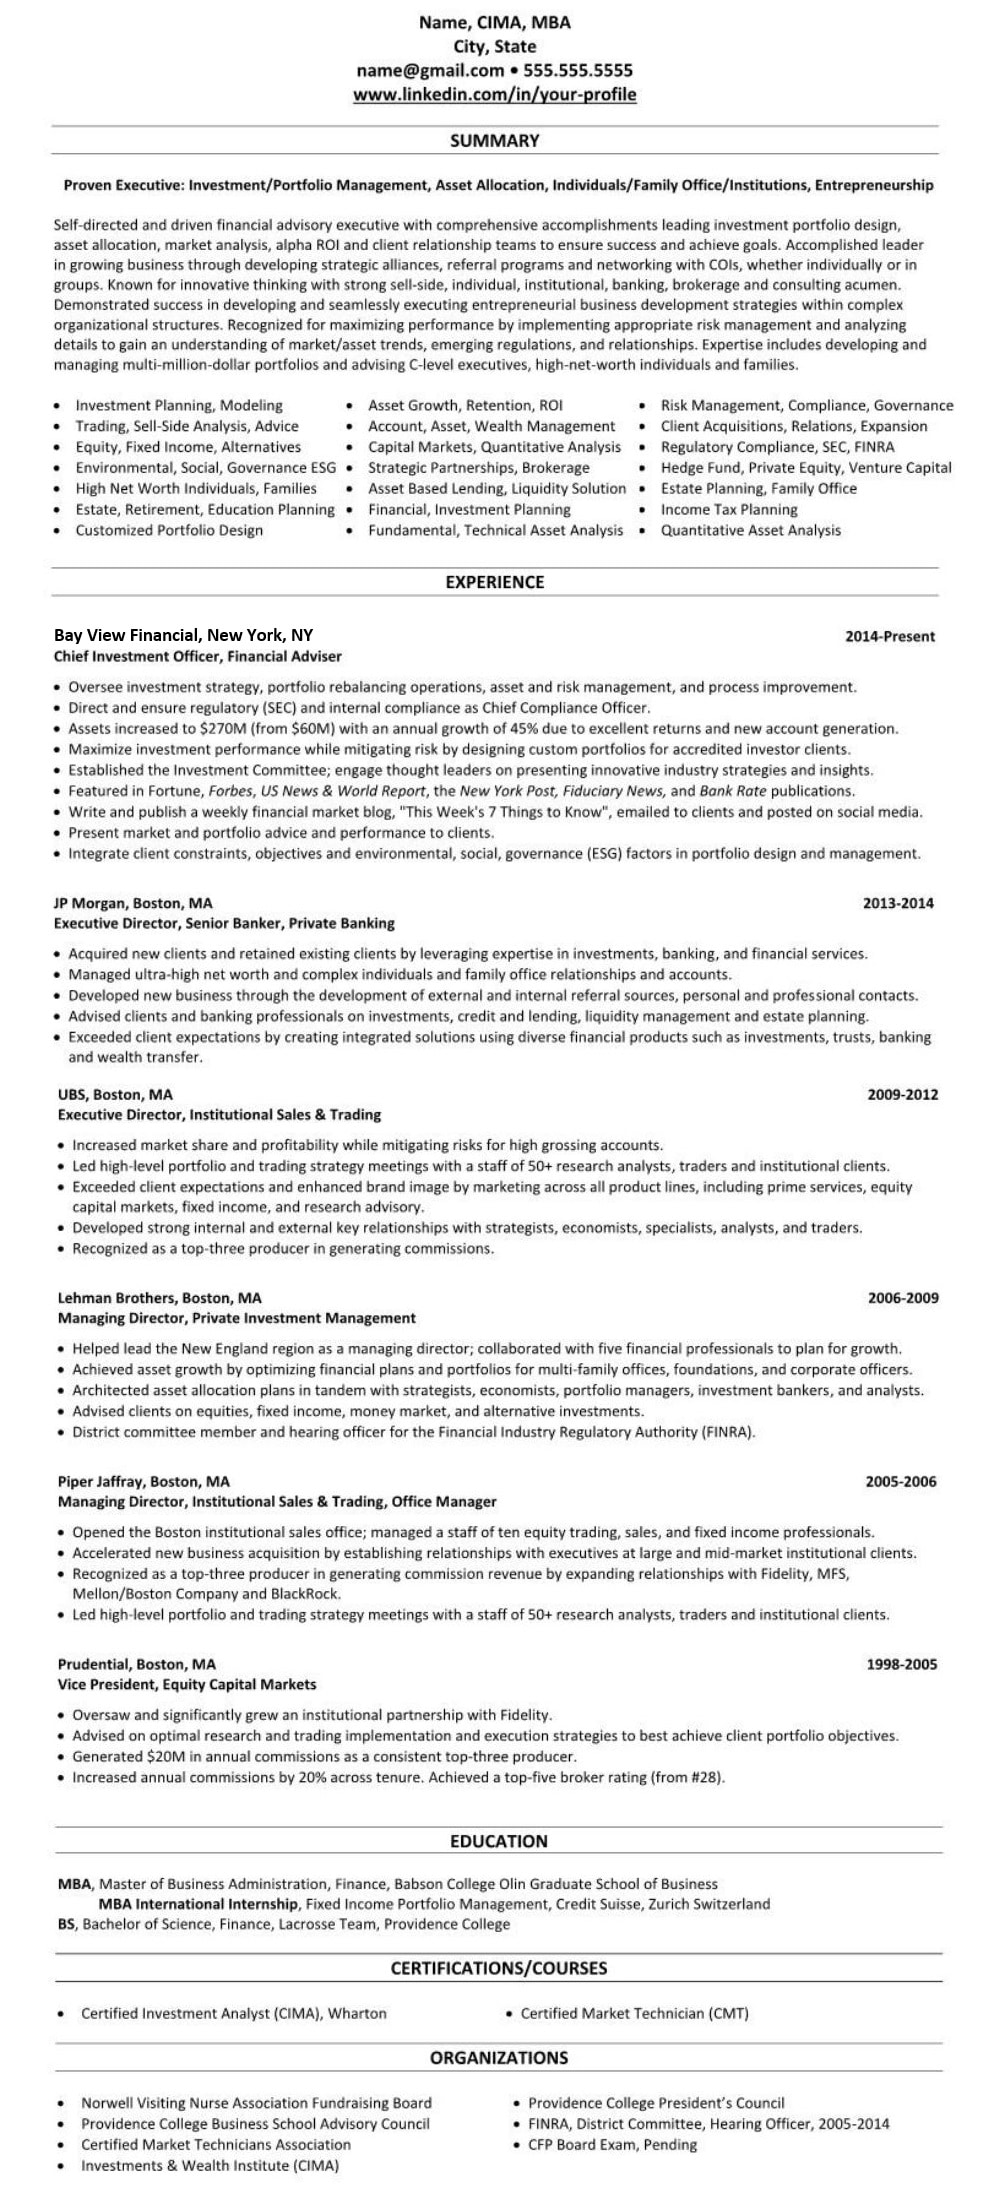 sample linkedin profile  u0026 resume  financial adviser